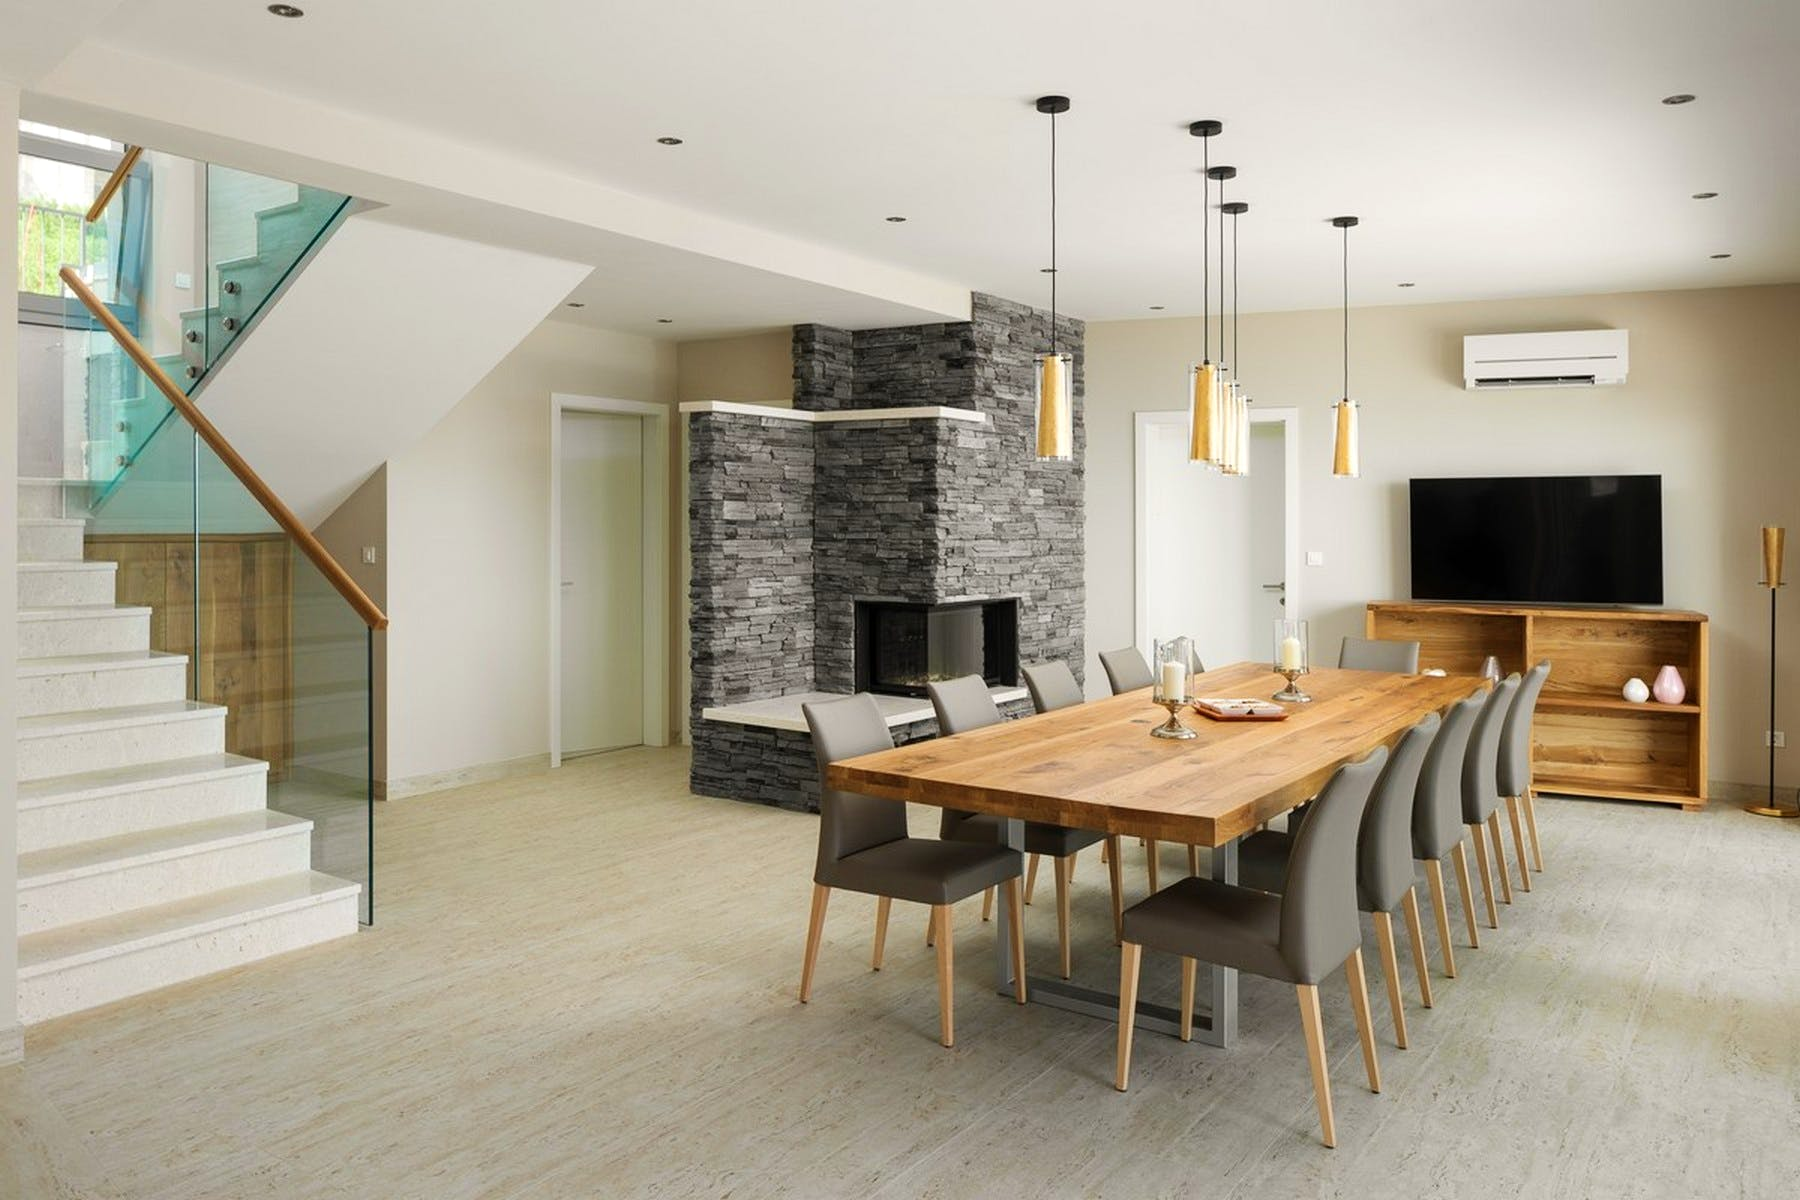 Dining room equipped with a fireplace